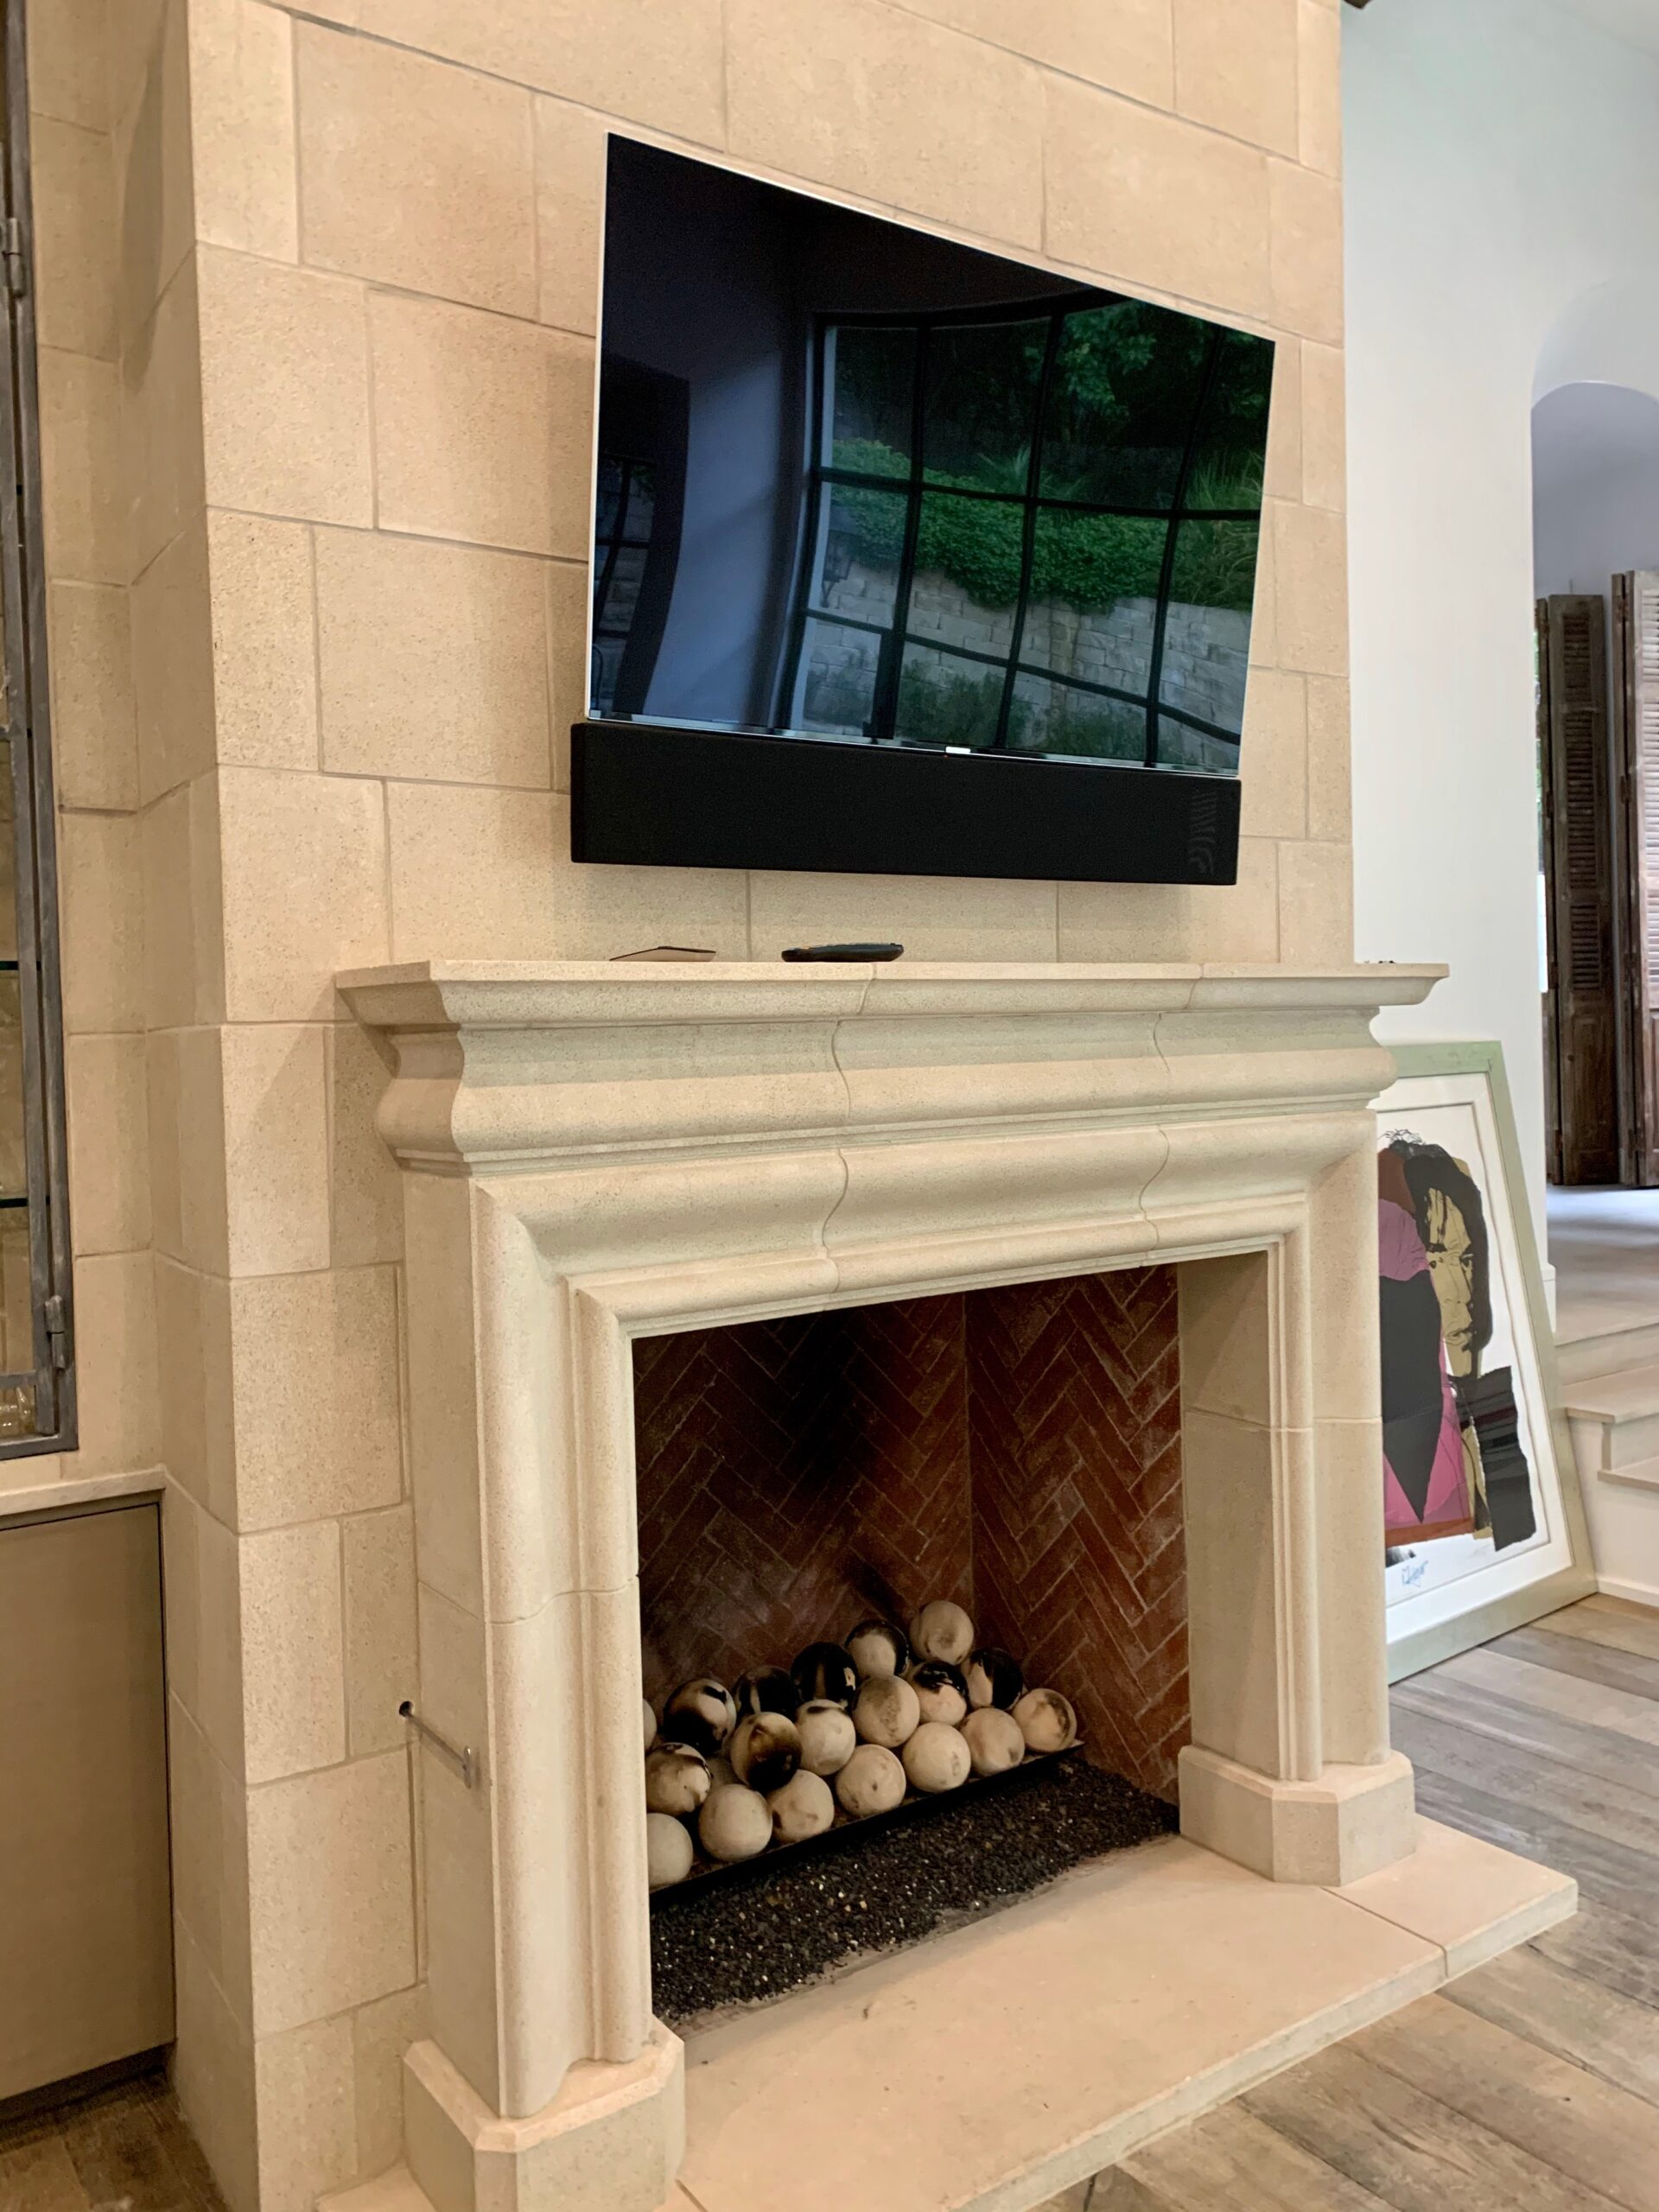 Thin flat screen TV products installed above fireplace